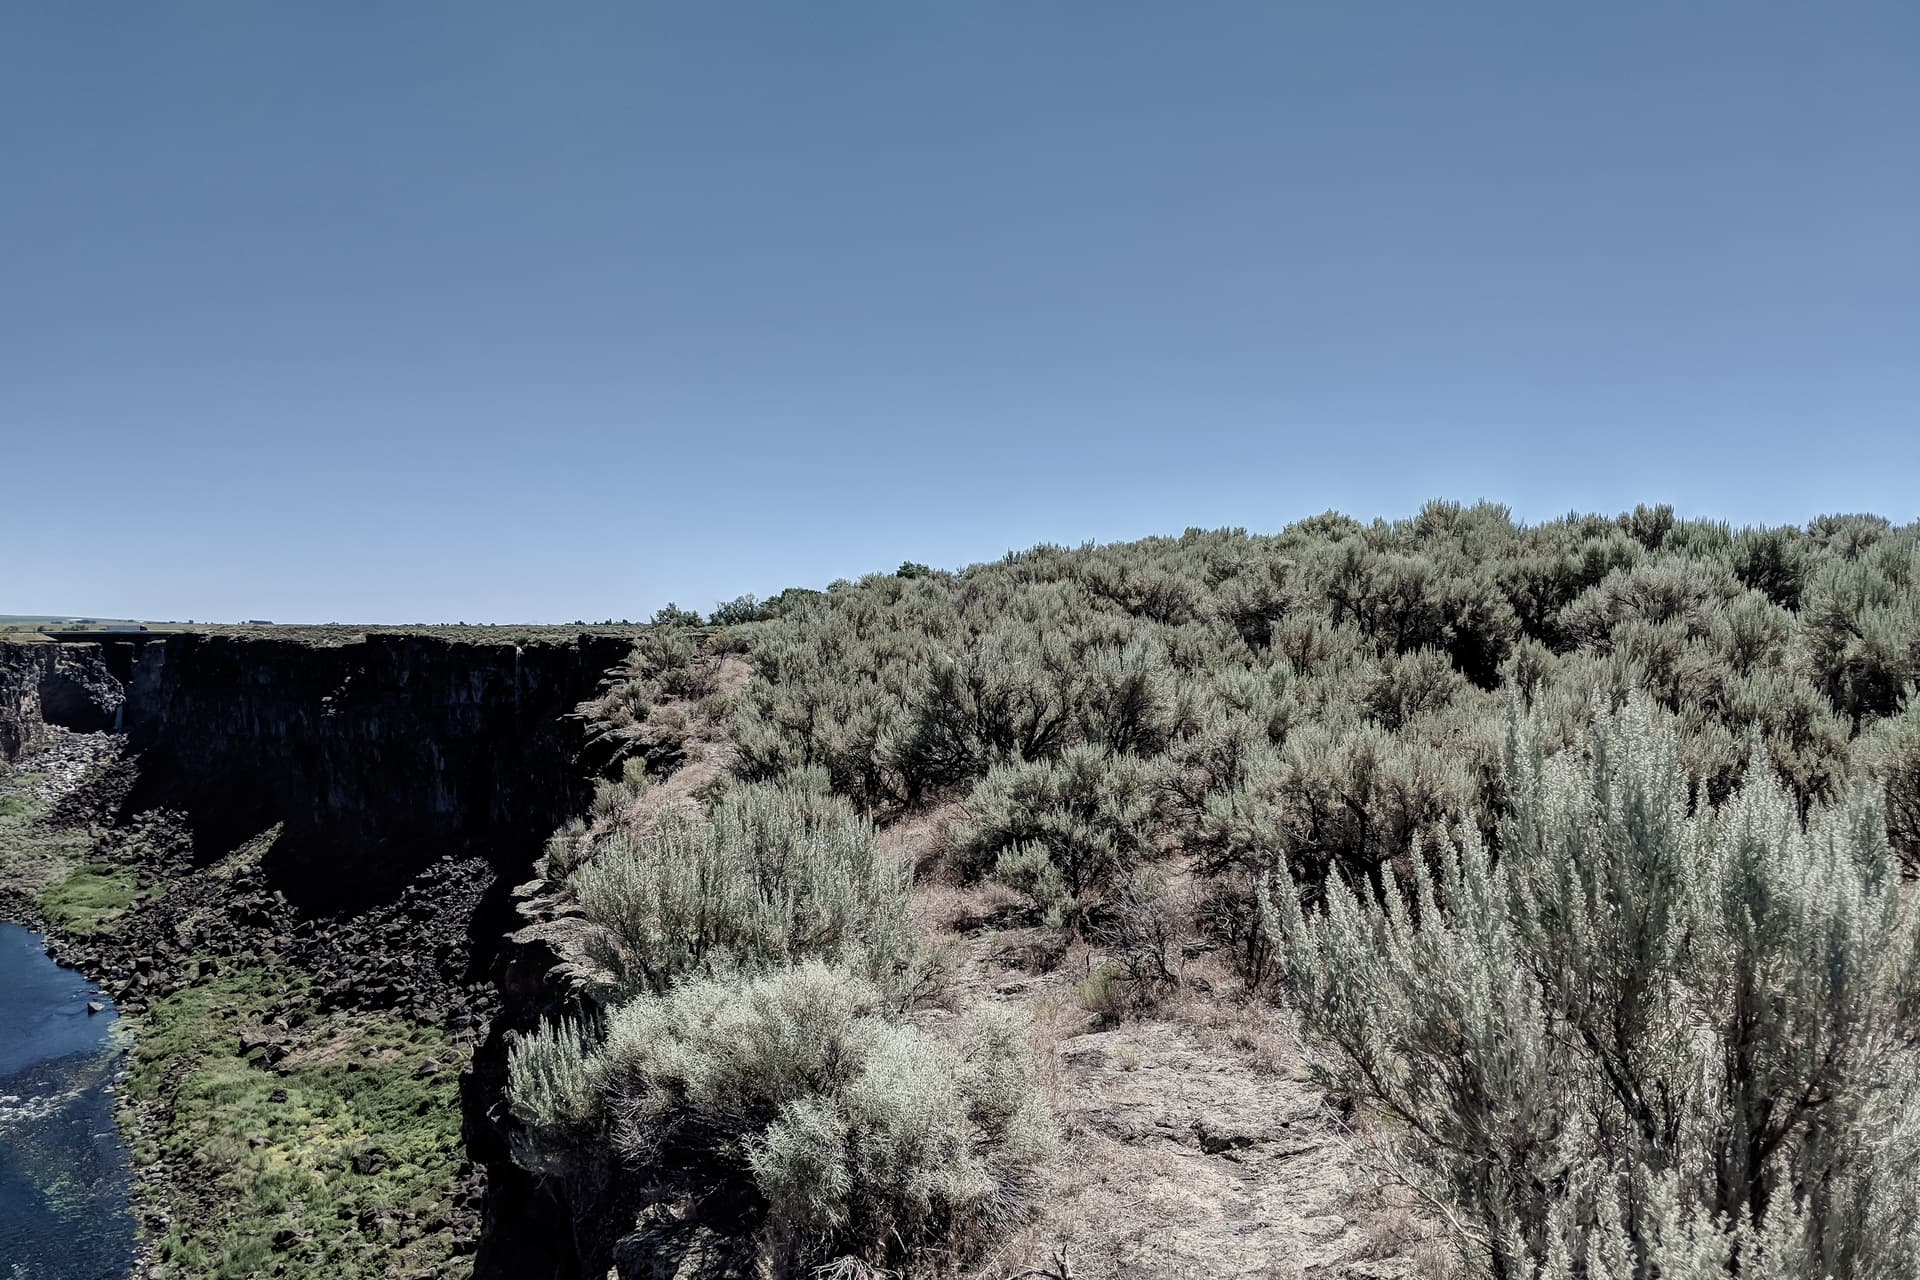 A river cuts a deep, sheer canyon through the basalt underlying otherwise empty desert scrubland. The canyon rim on the right is densely covered in sage.